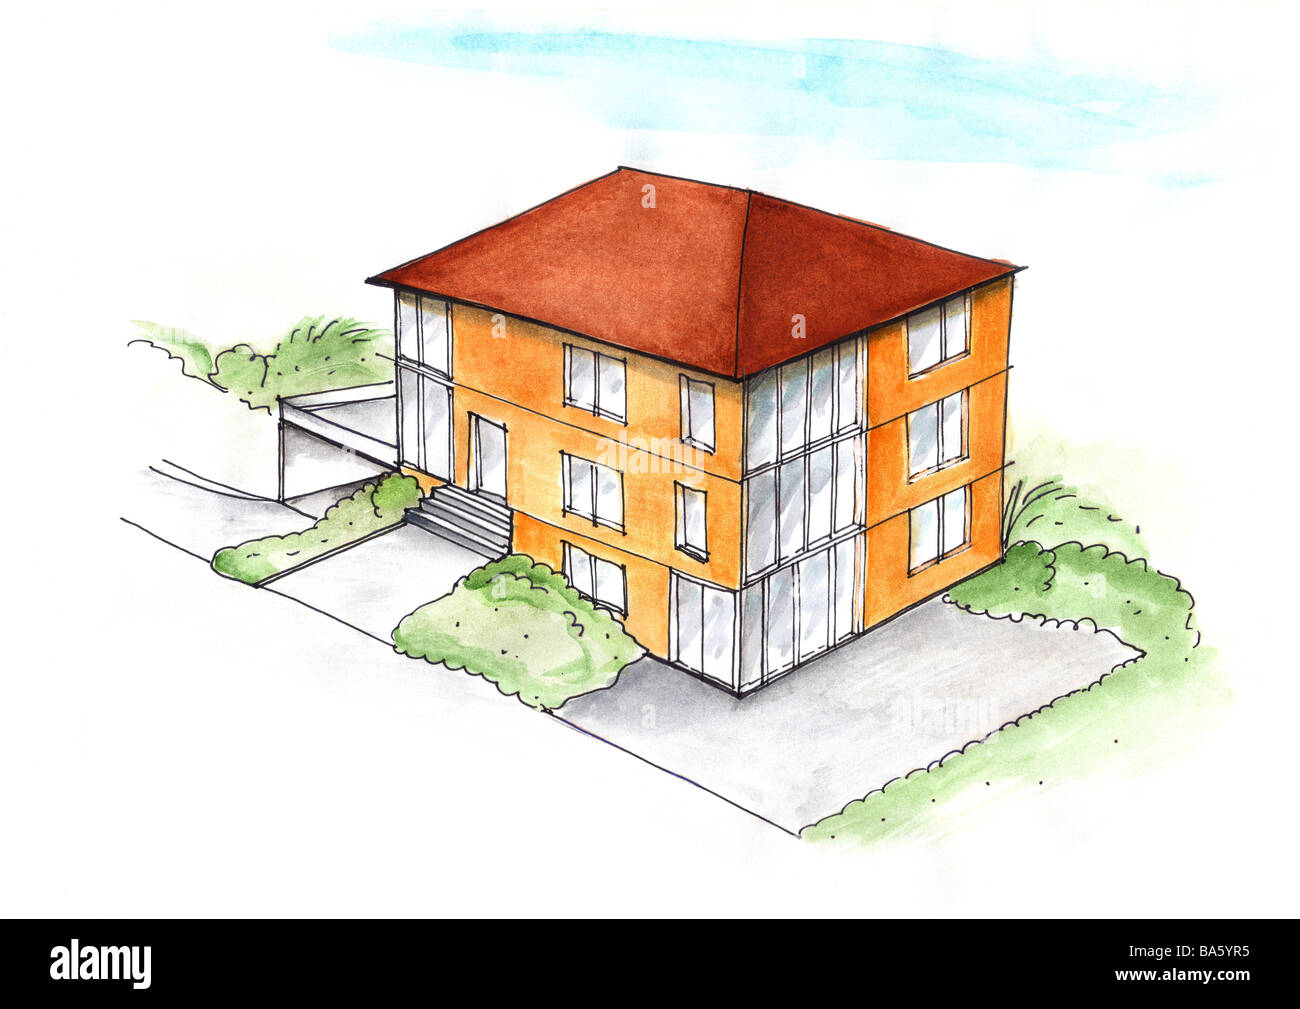 Illustration increase family house watercolor drawing sketch house villa design architecture symbol dream house wish house